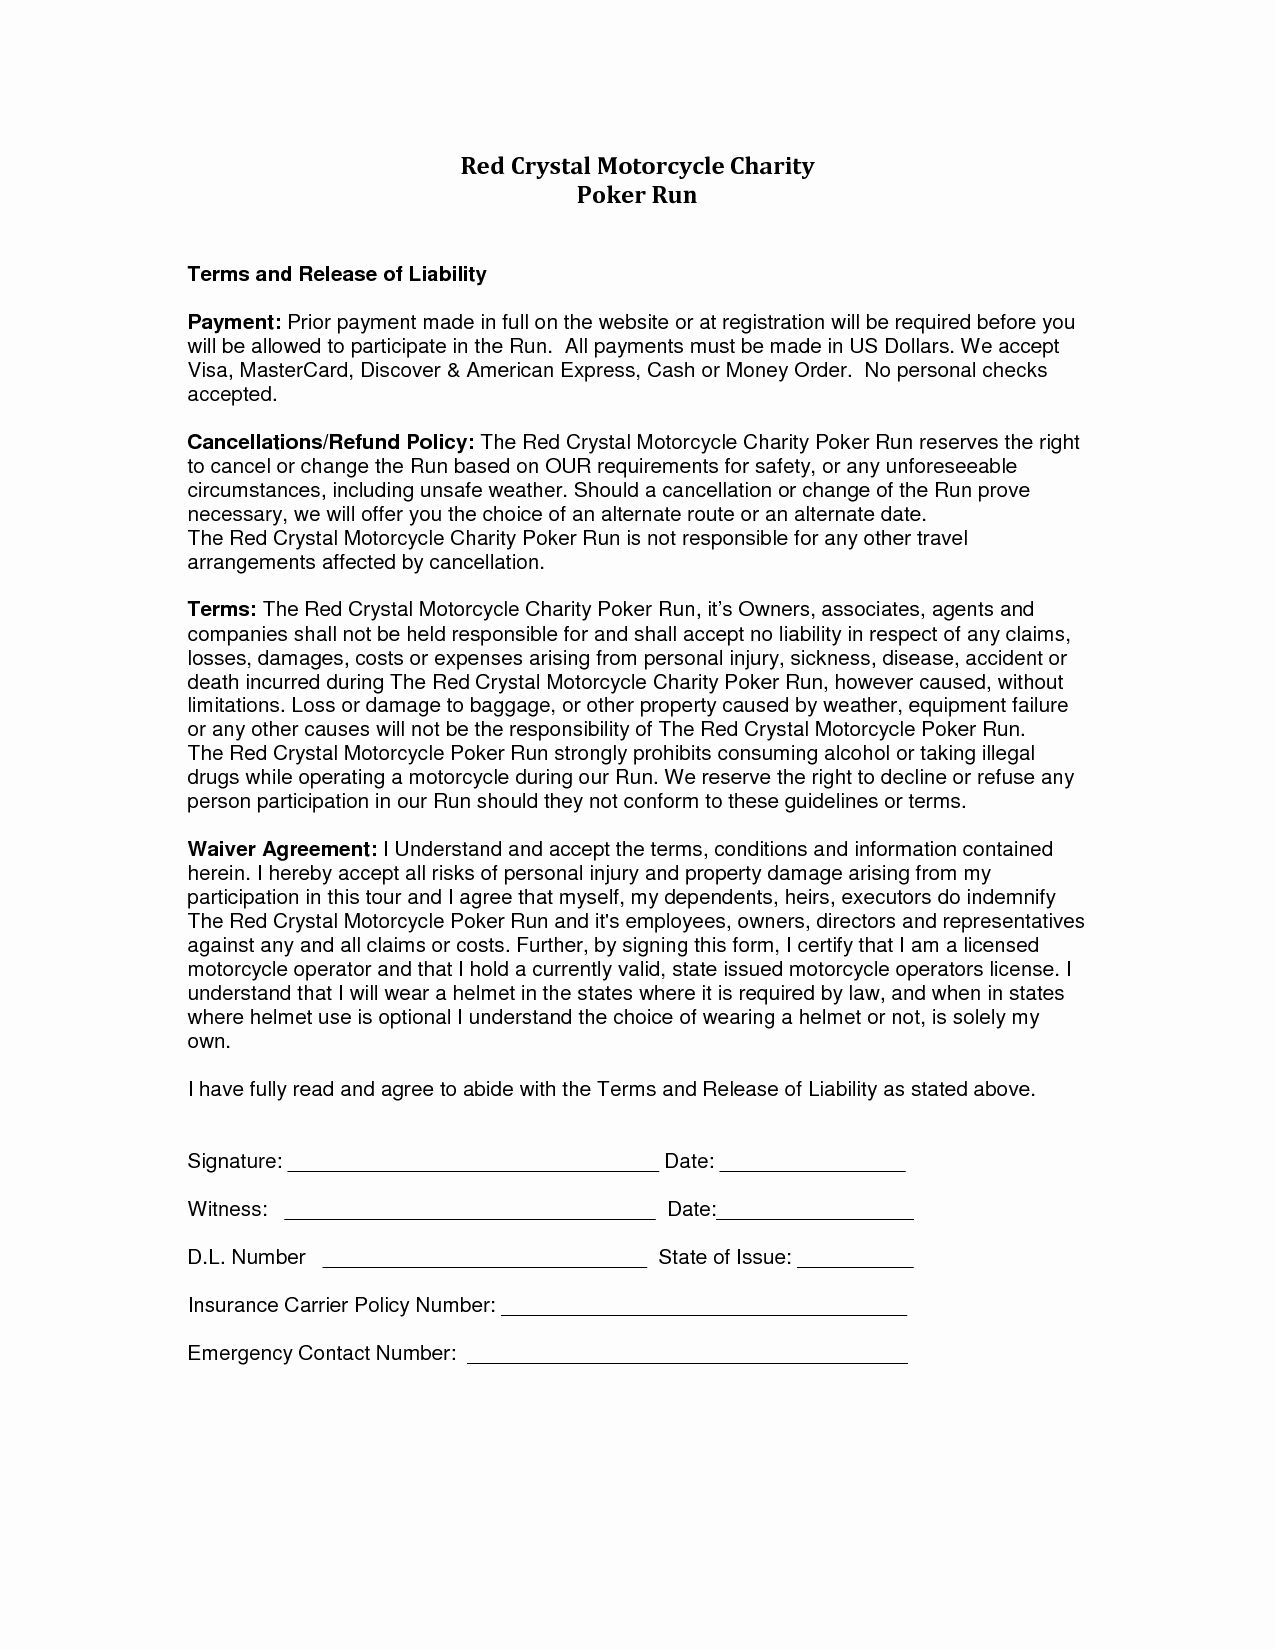 40 Liability Release Form Template In 2020 Liability Waiver